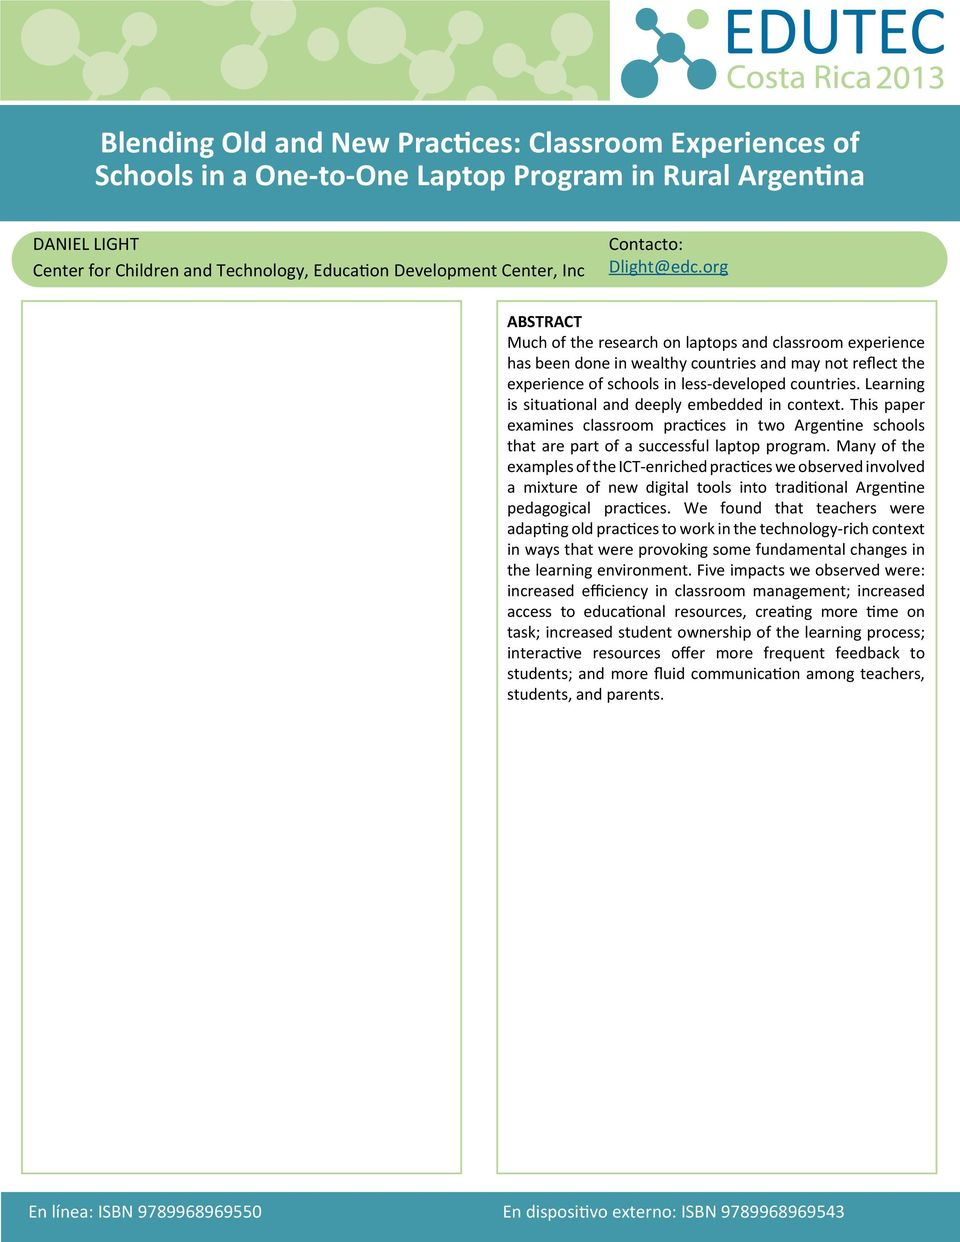 Learning is situational and deeply embedded in context. This paper examines classroom practices in two Argentine schools that are part of a successful laptop program.